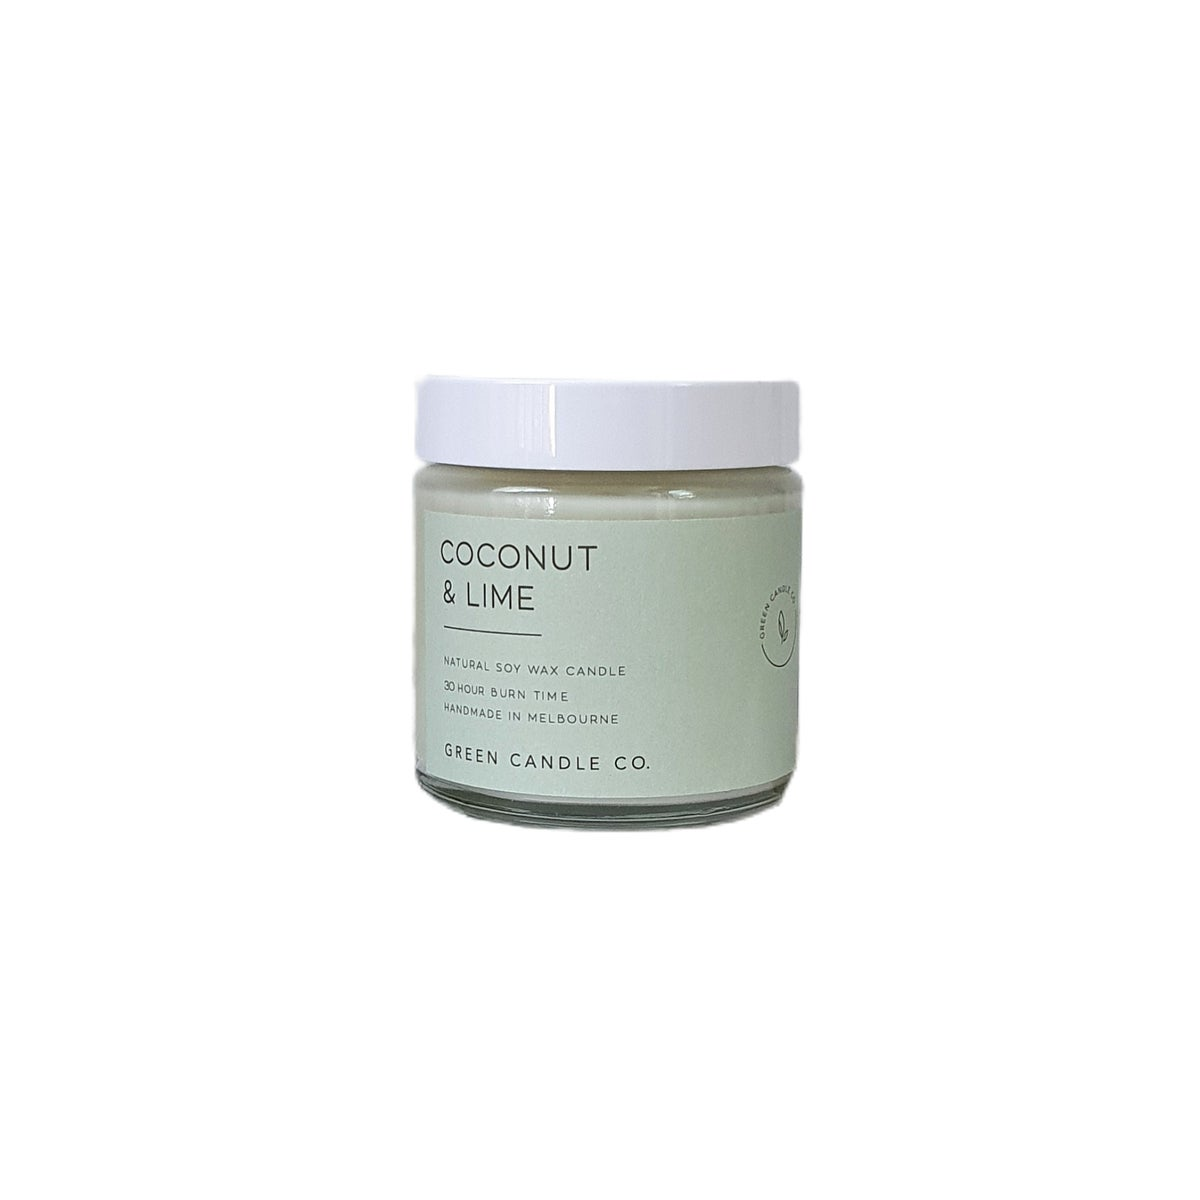 Image of COCONUT & LIME Candle / Small